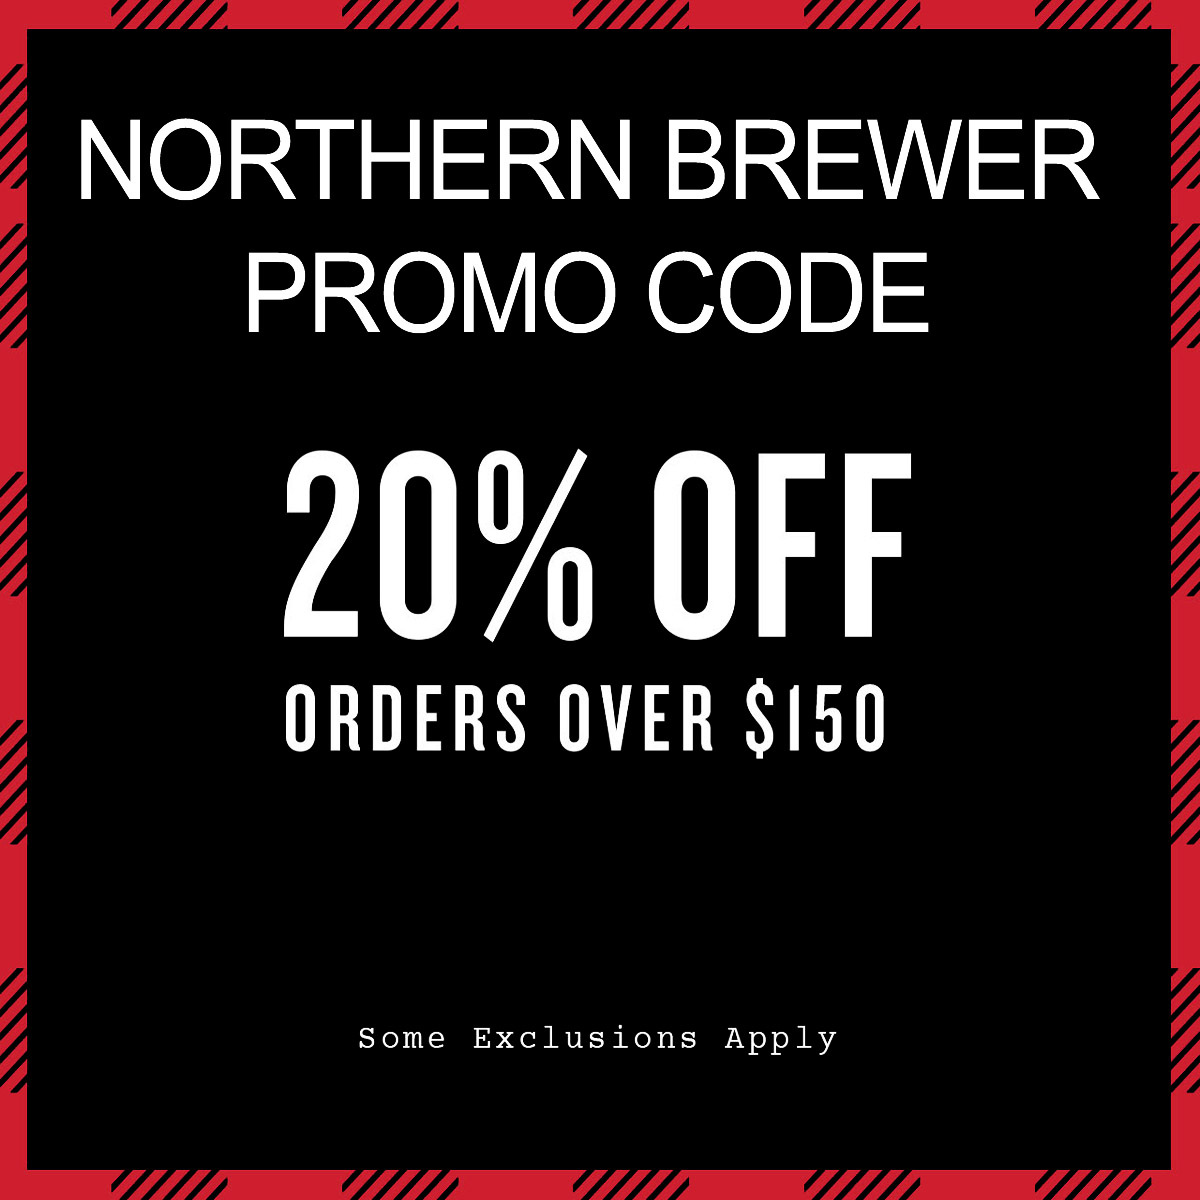 Northern Brewer Save 20% Off On Orders of $150 Promo Code for Northern Brewer Promo Code for November Coupon Code